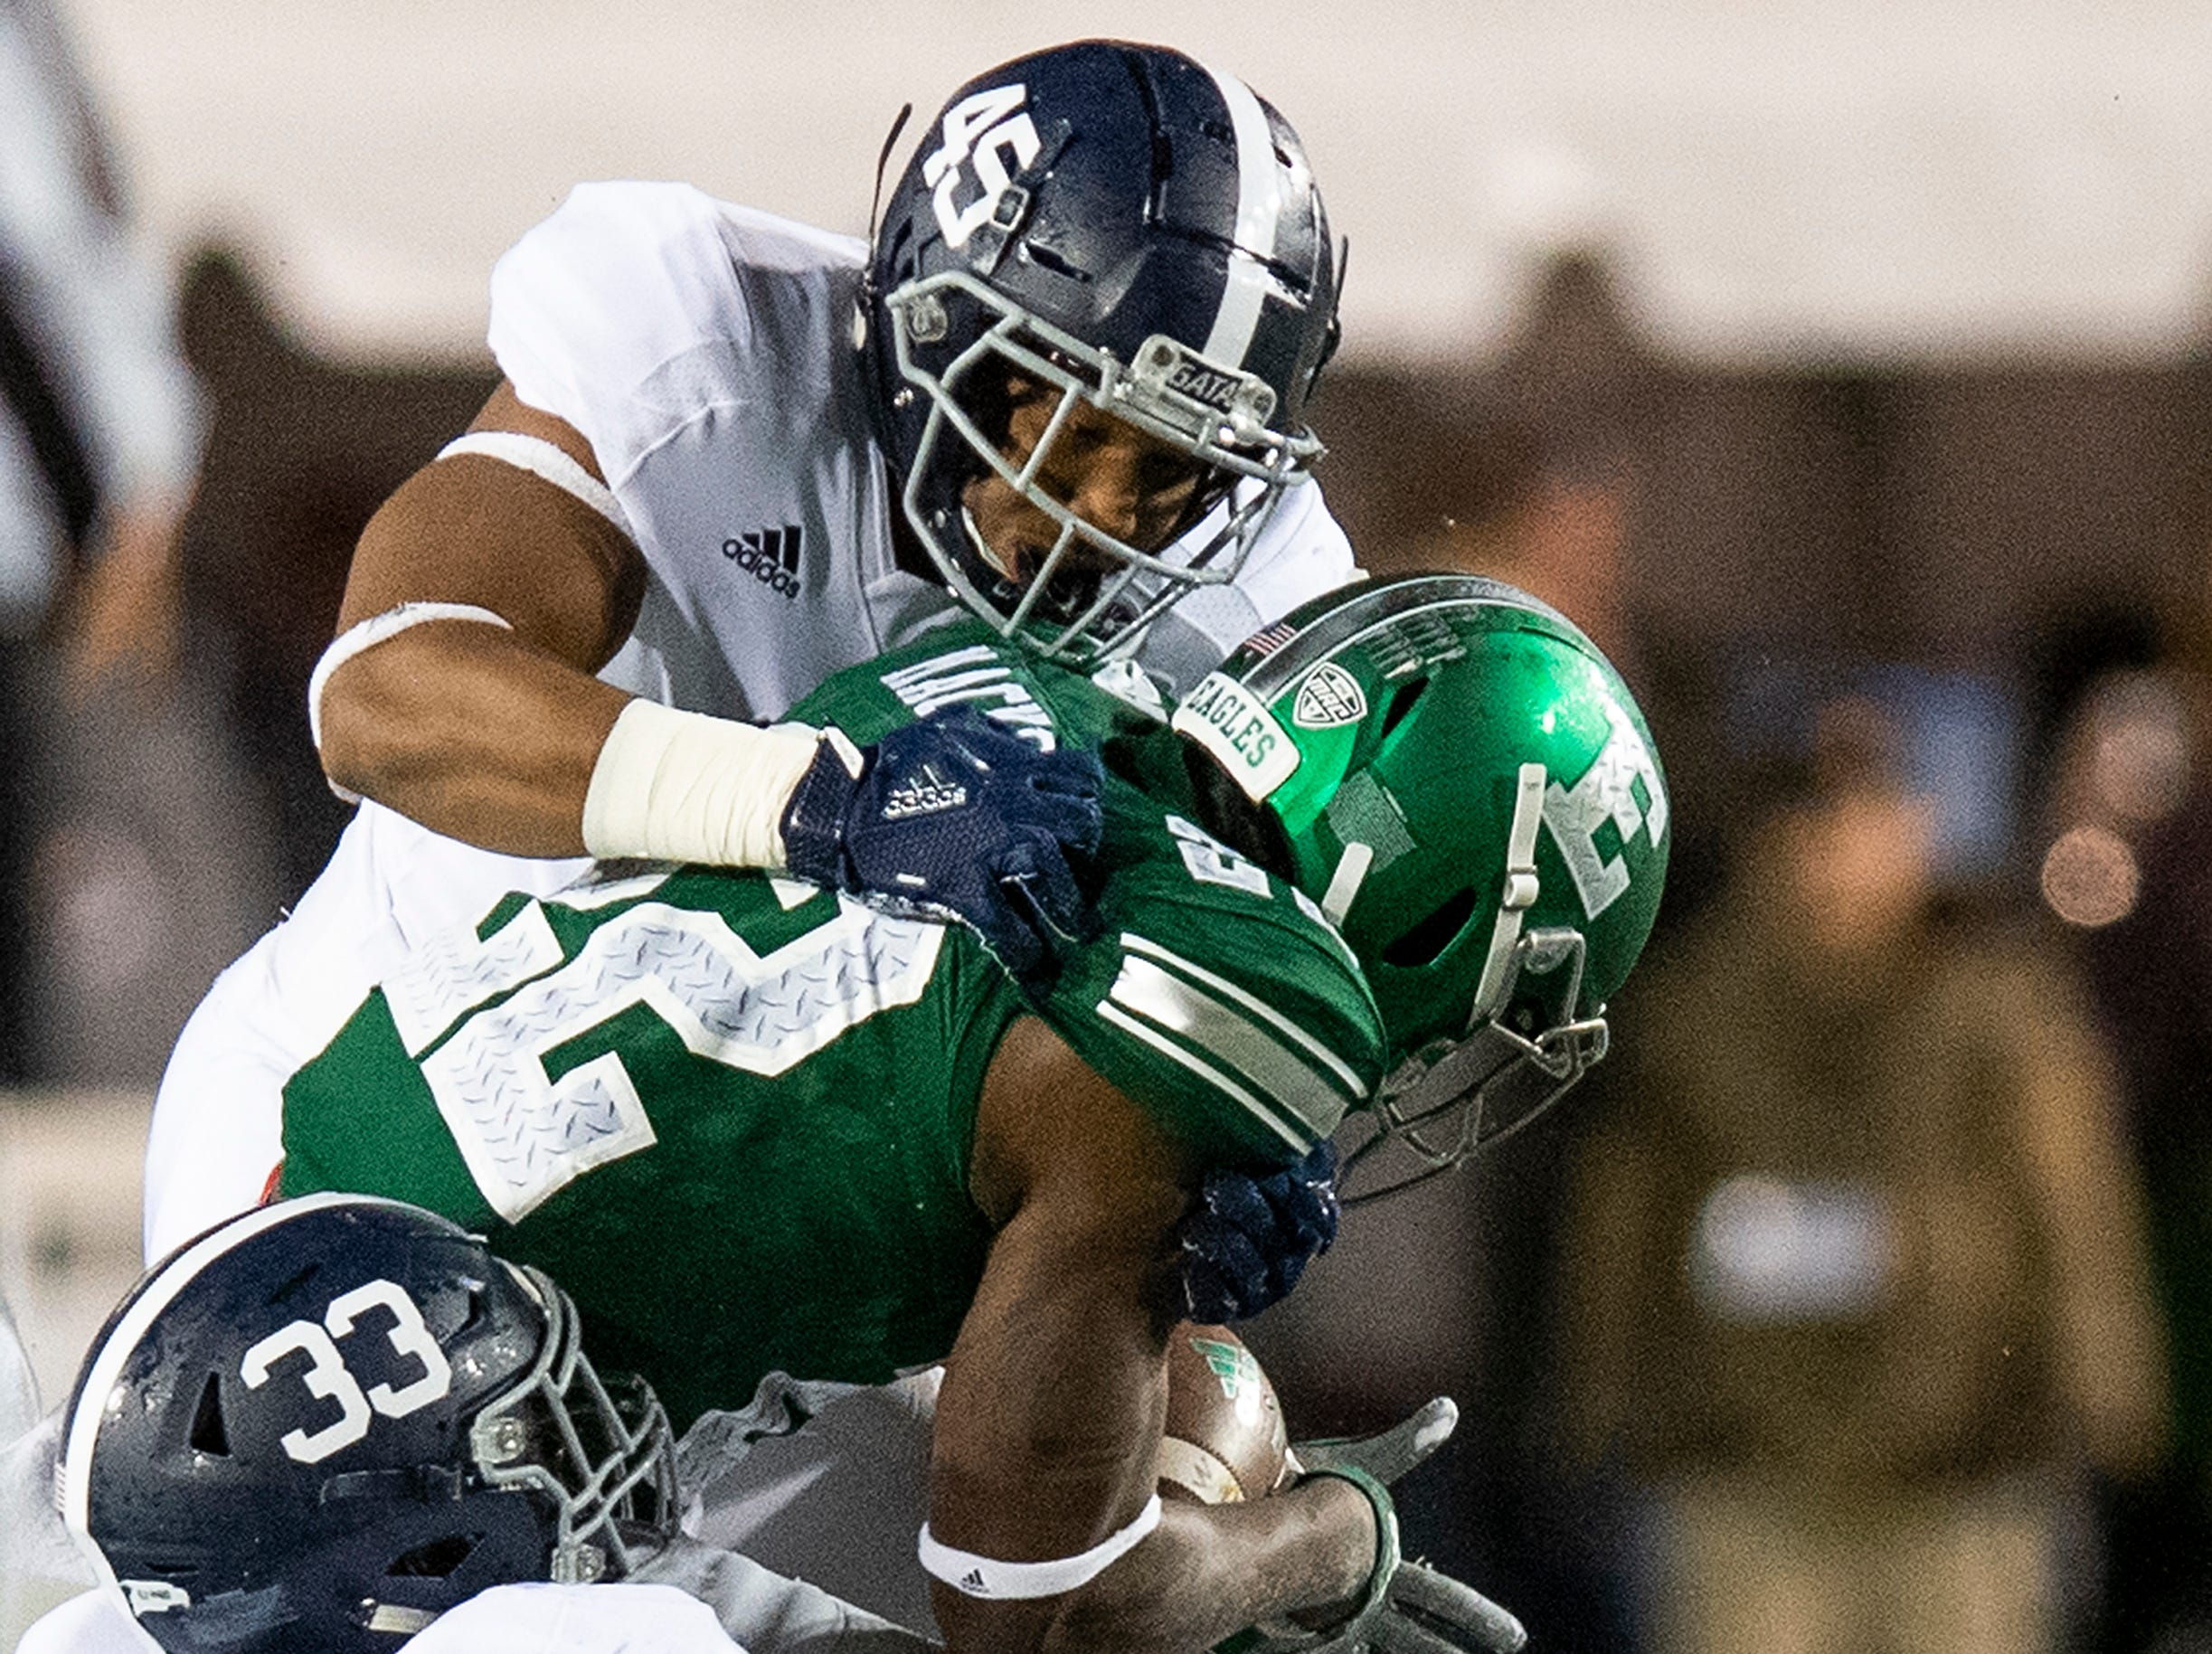 Eastern Michigan running back Karmi Mackey (22) is stopped by Georgia Southern inside linebacker Rashad  (45) and  inside linebacker Tomarcio Reese (33) in the Raycom Media  Camellia Bowl held at Cramton Bowl in Montgomery, Ala., on Saturday December 15, 2018.